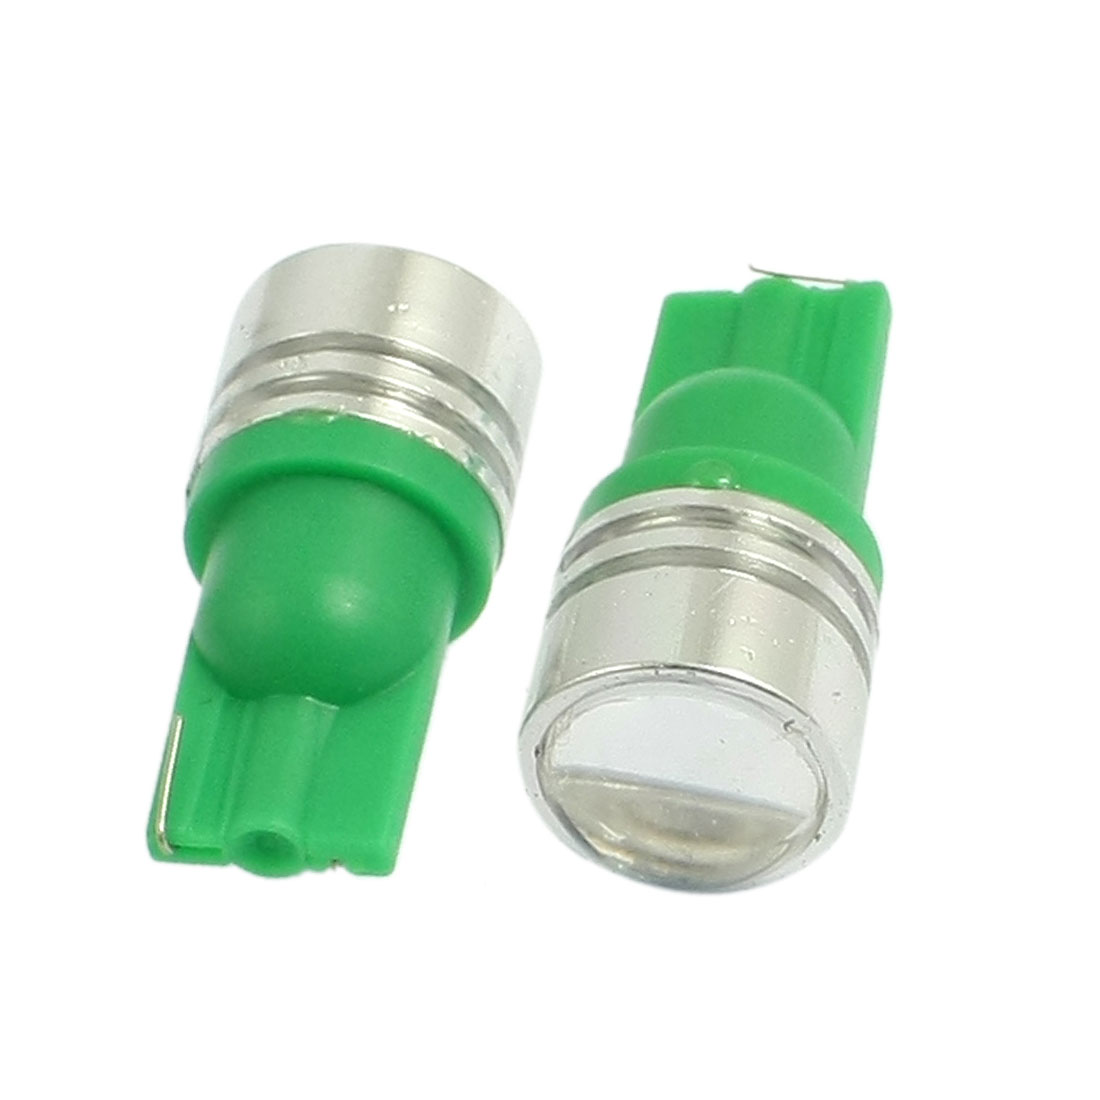 2 Pcs Green 1.5W T10 W5W 904 168 194 LED Car Dome Map Lights Bulbs